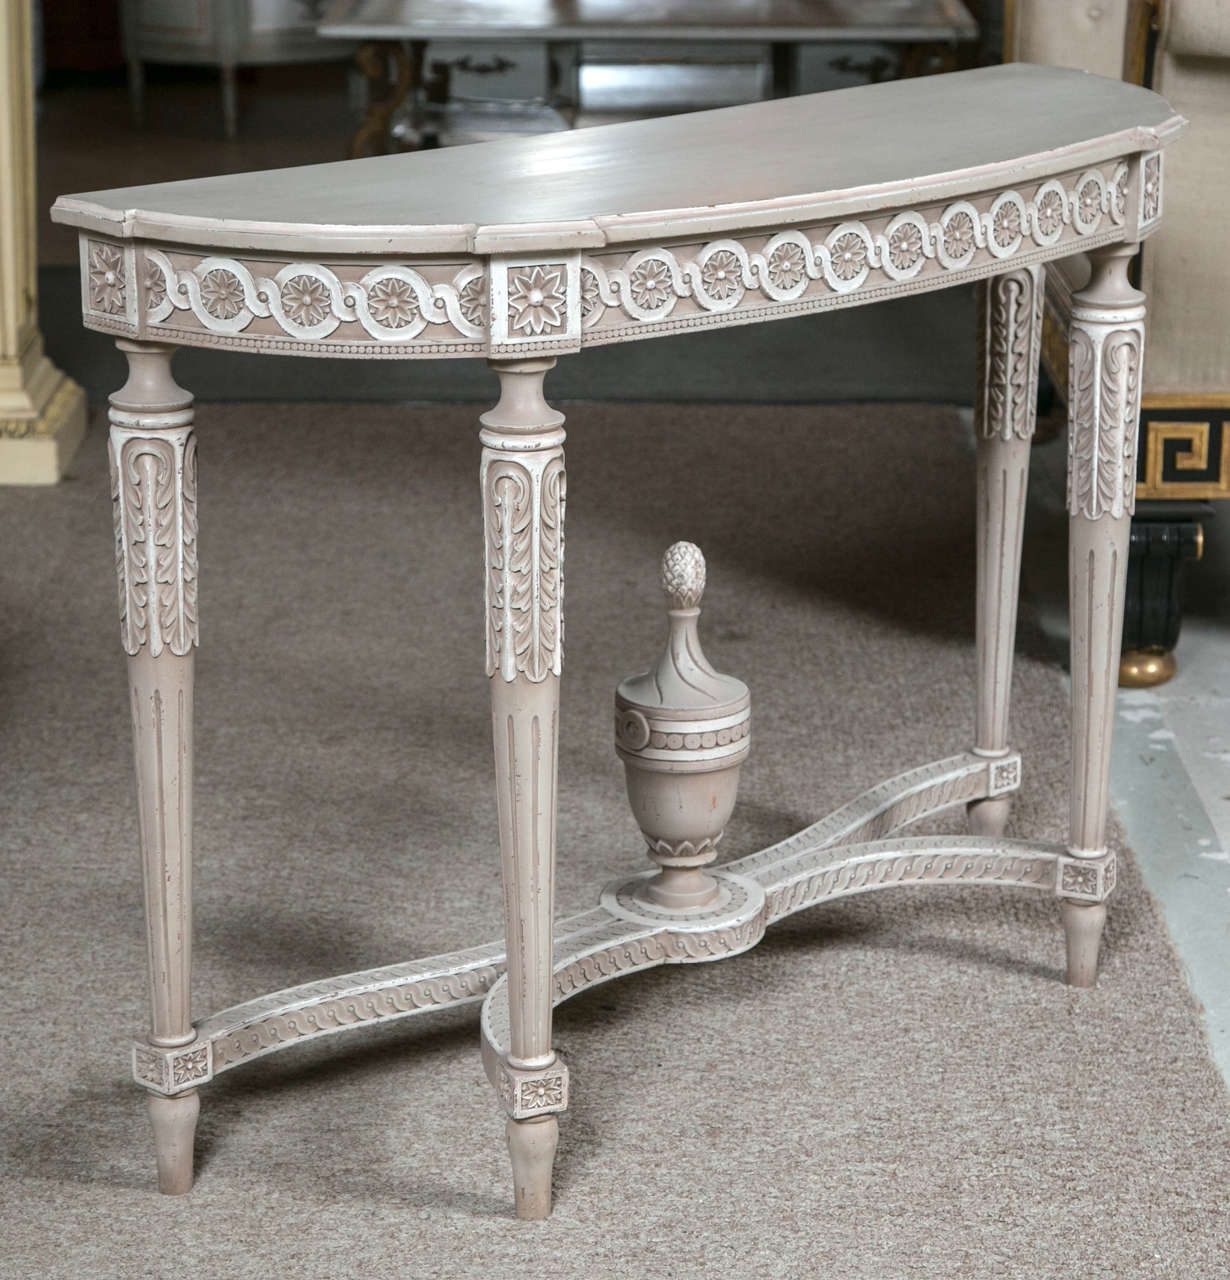 A Charming French Polychromed Demilune Console Table In The Style Of Louis Xvi Circa 1940s